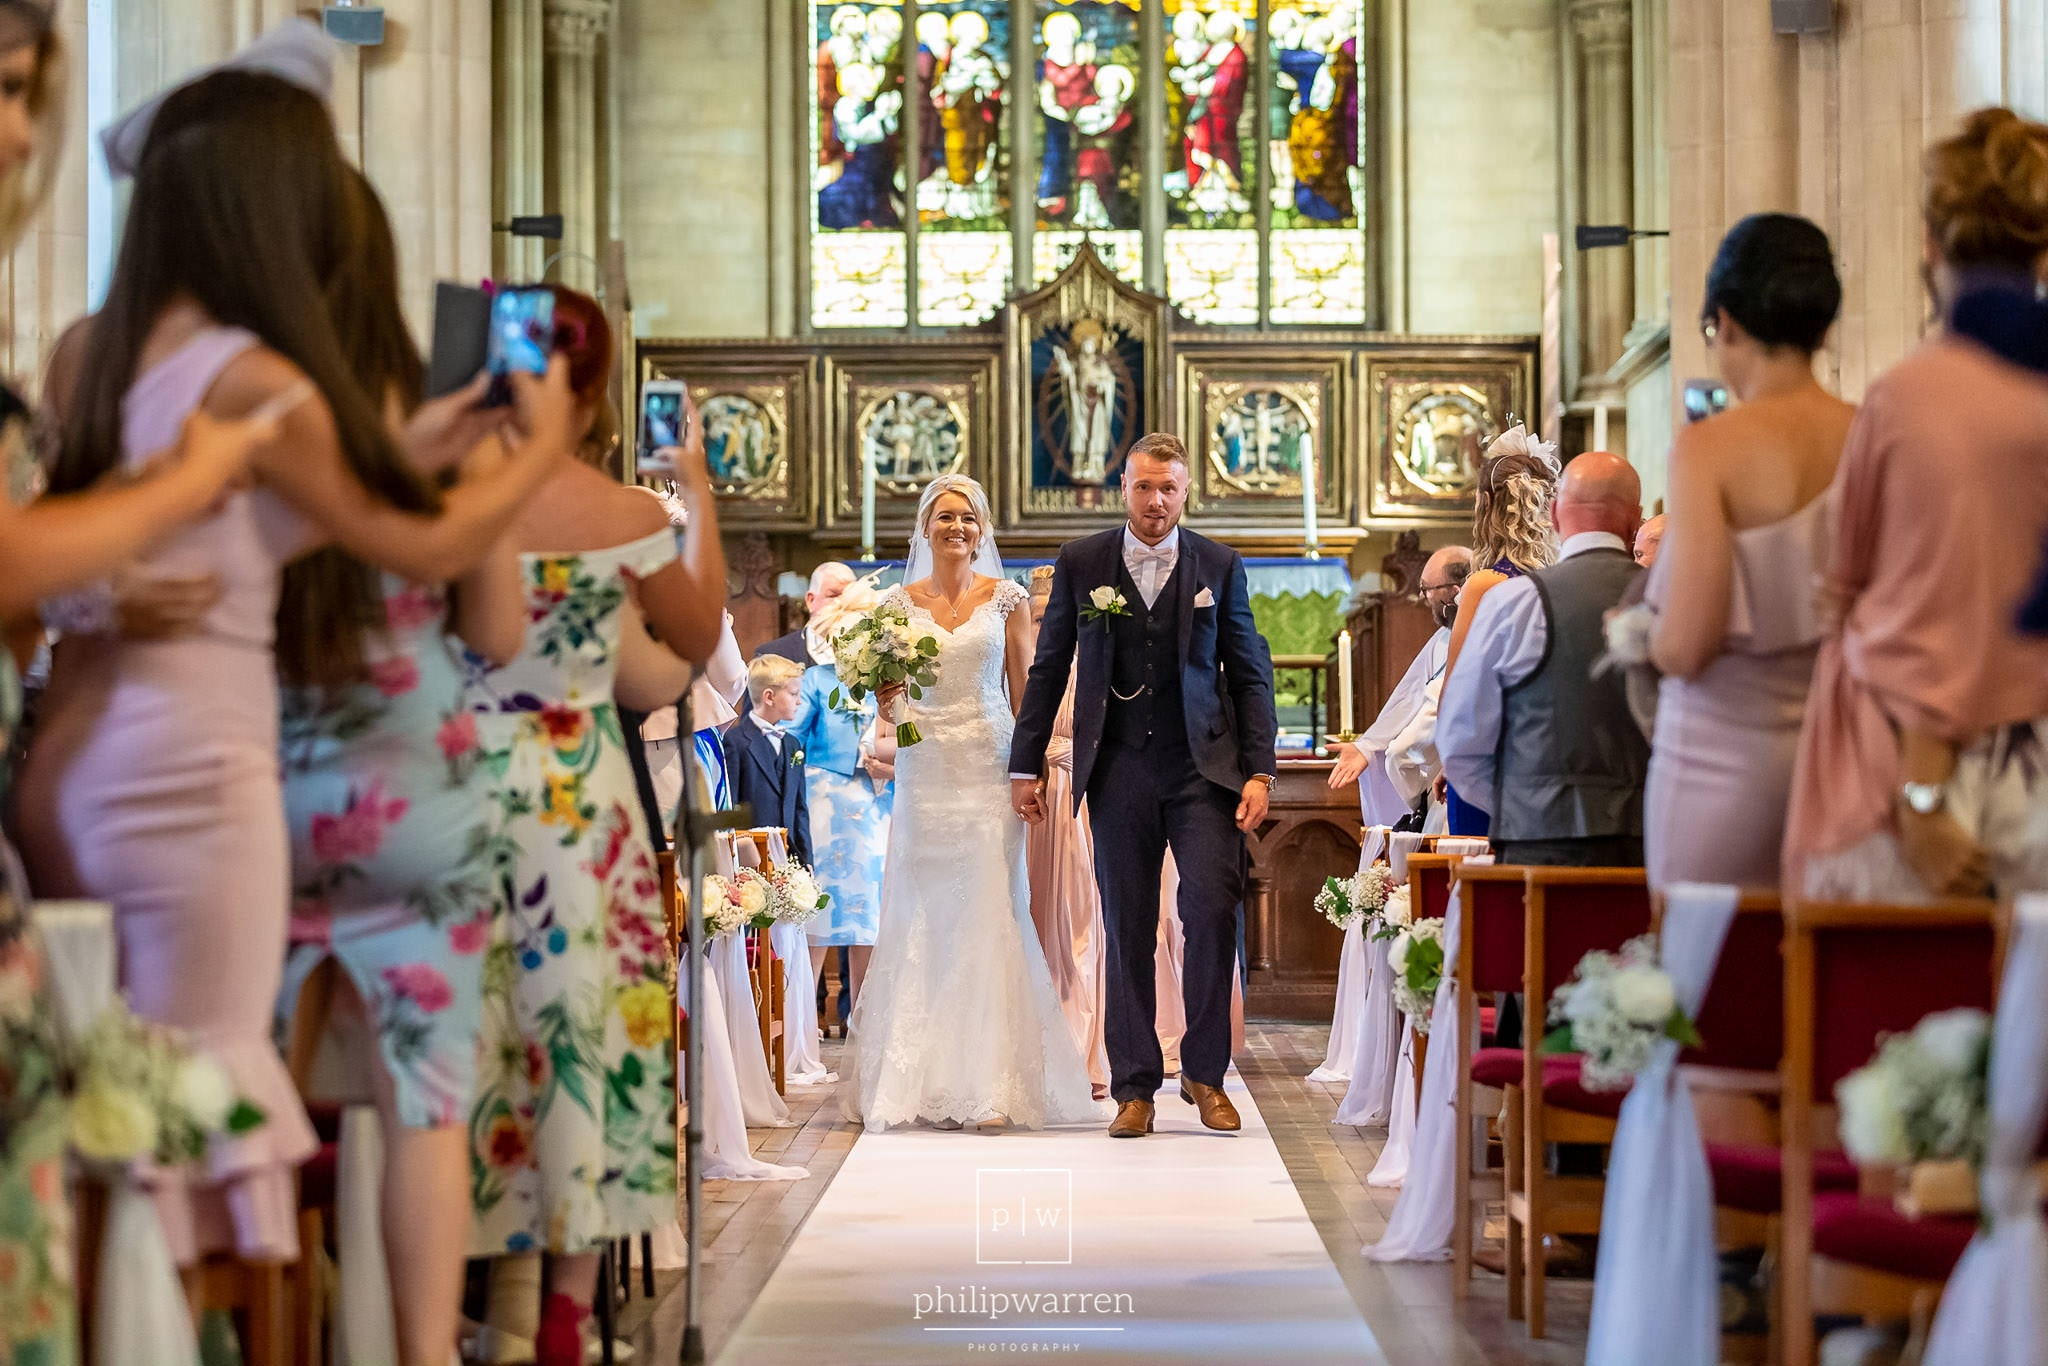 walking back down the aisle in st marys church in chepstow after getting married. The bride is carrying her bouquet and holding hands with her new husband